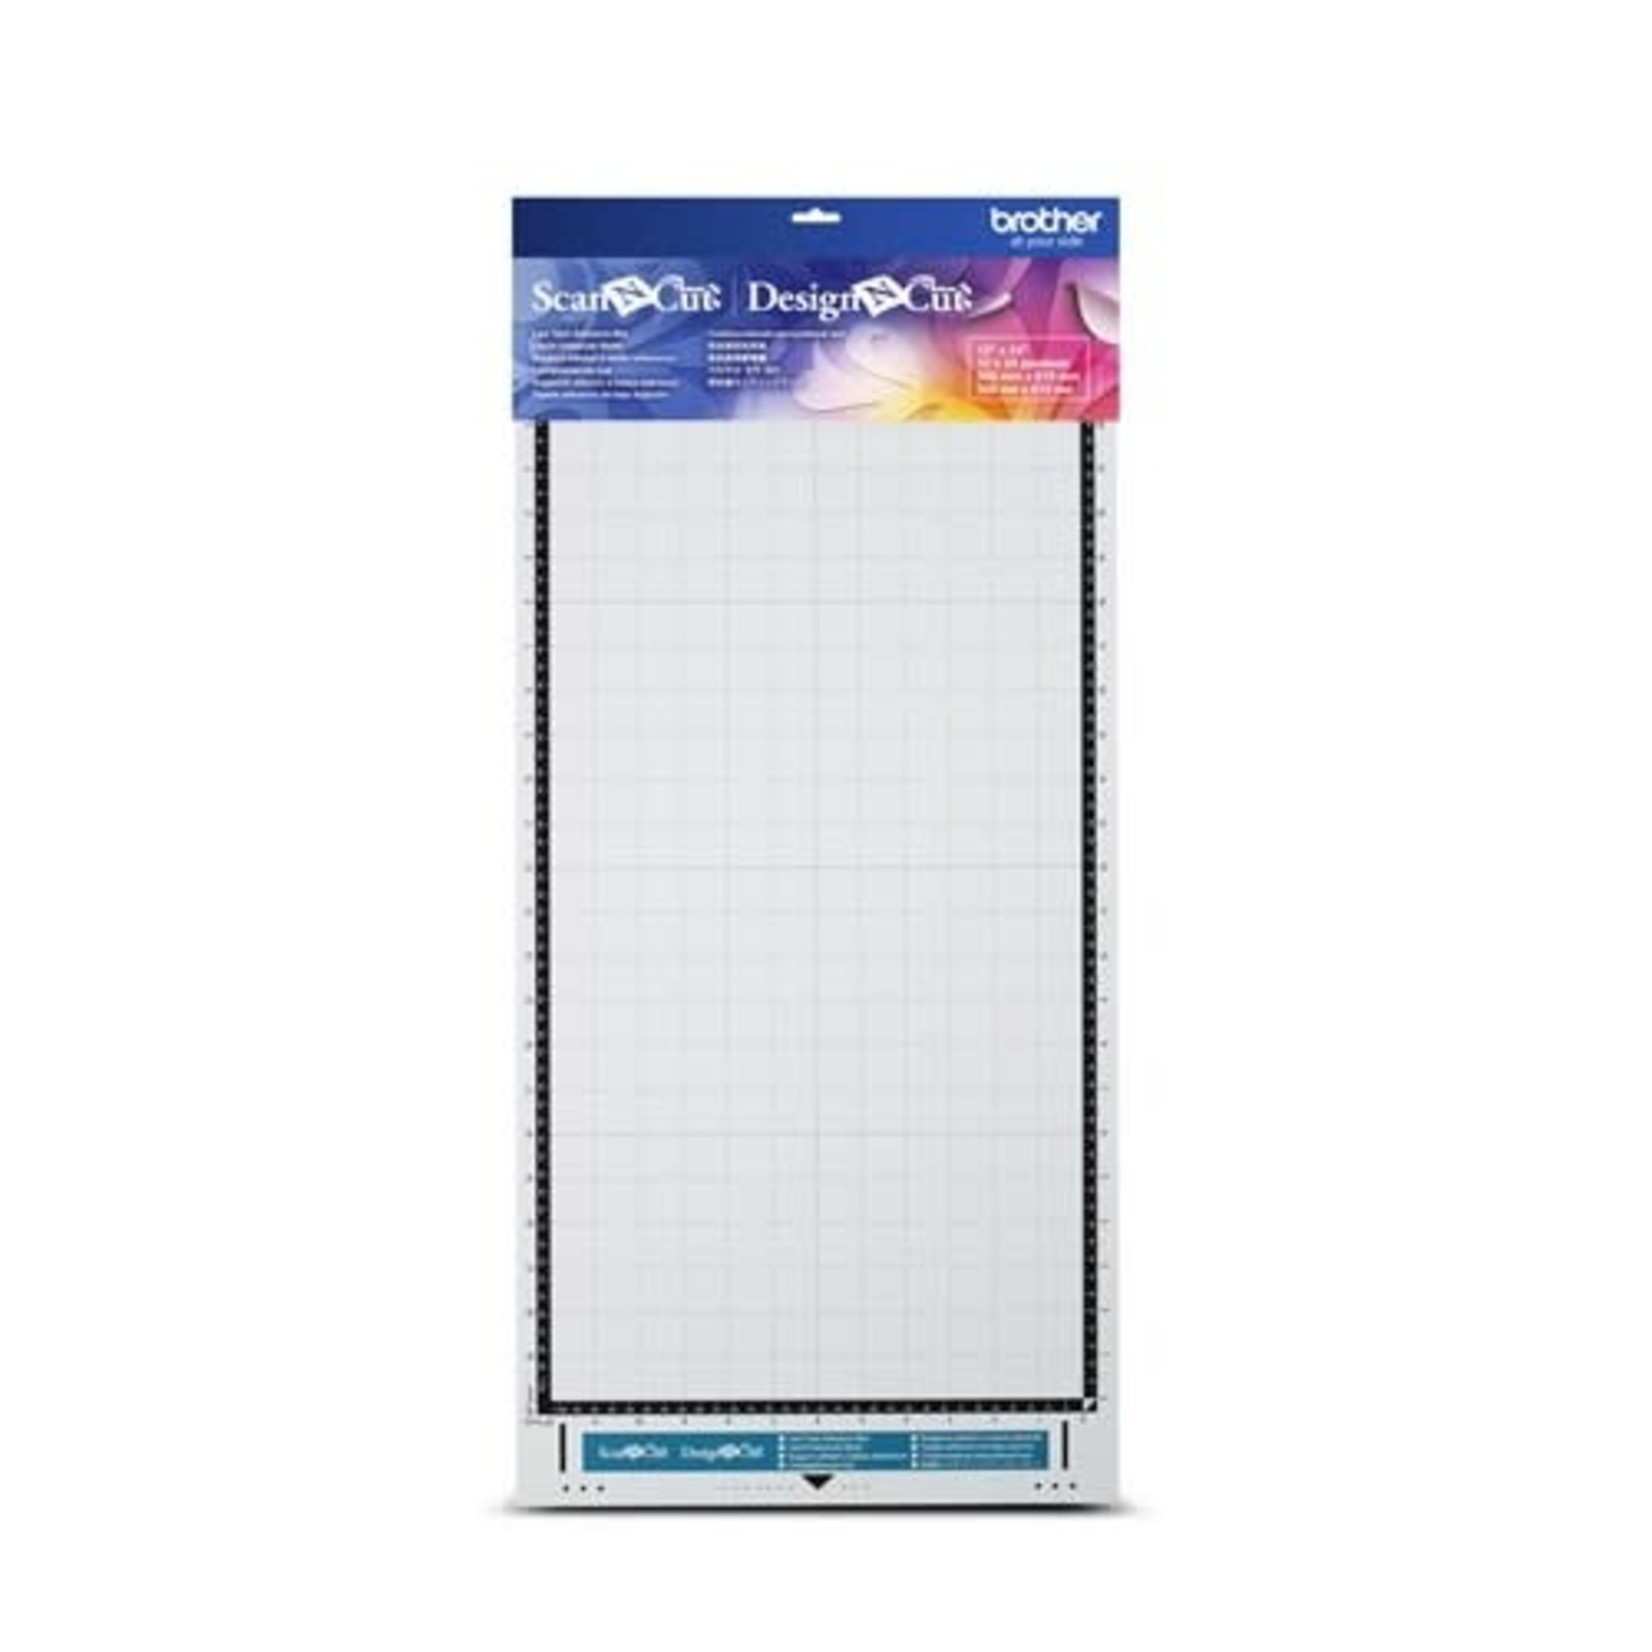 Brother BROTHER LOW TACK  MAT 12x24 SCAN N CUT